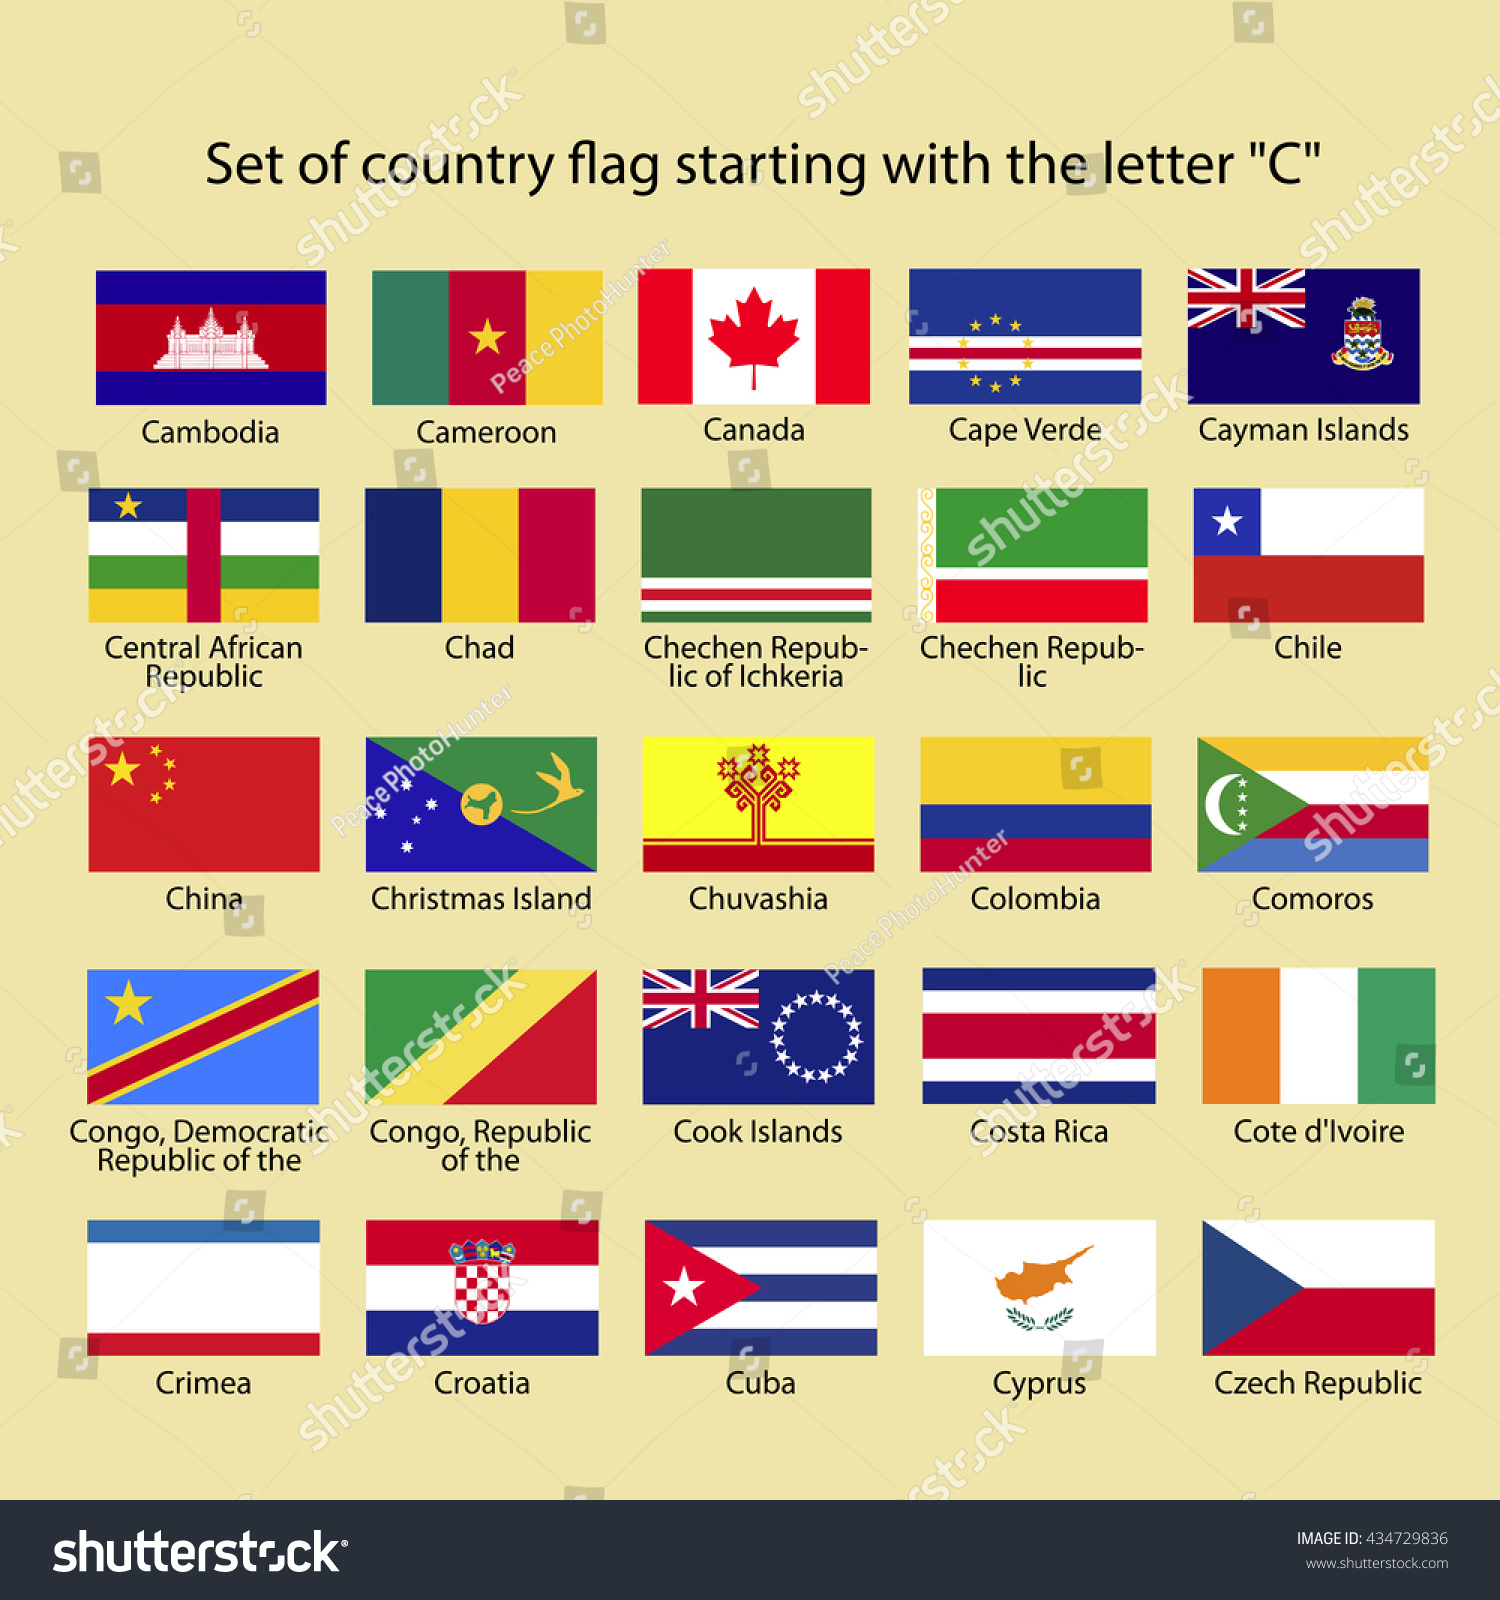 What Country Starts With The Letter Z